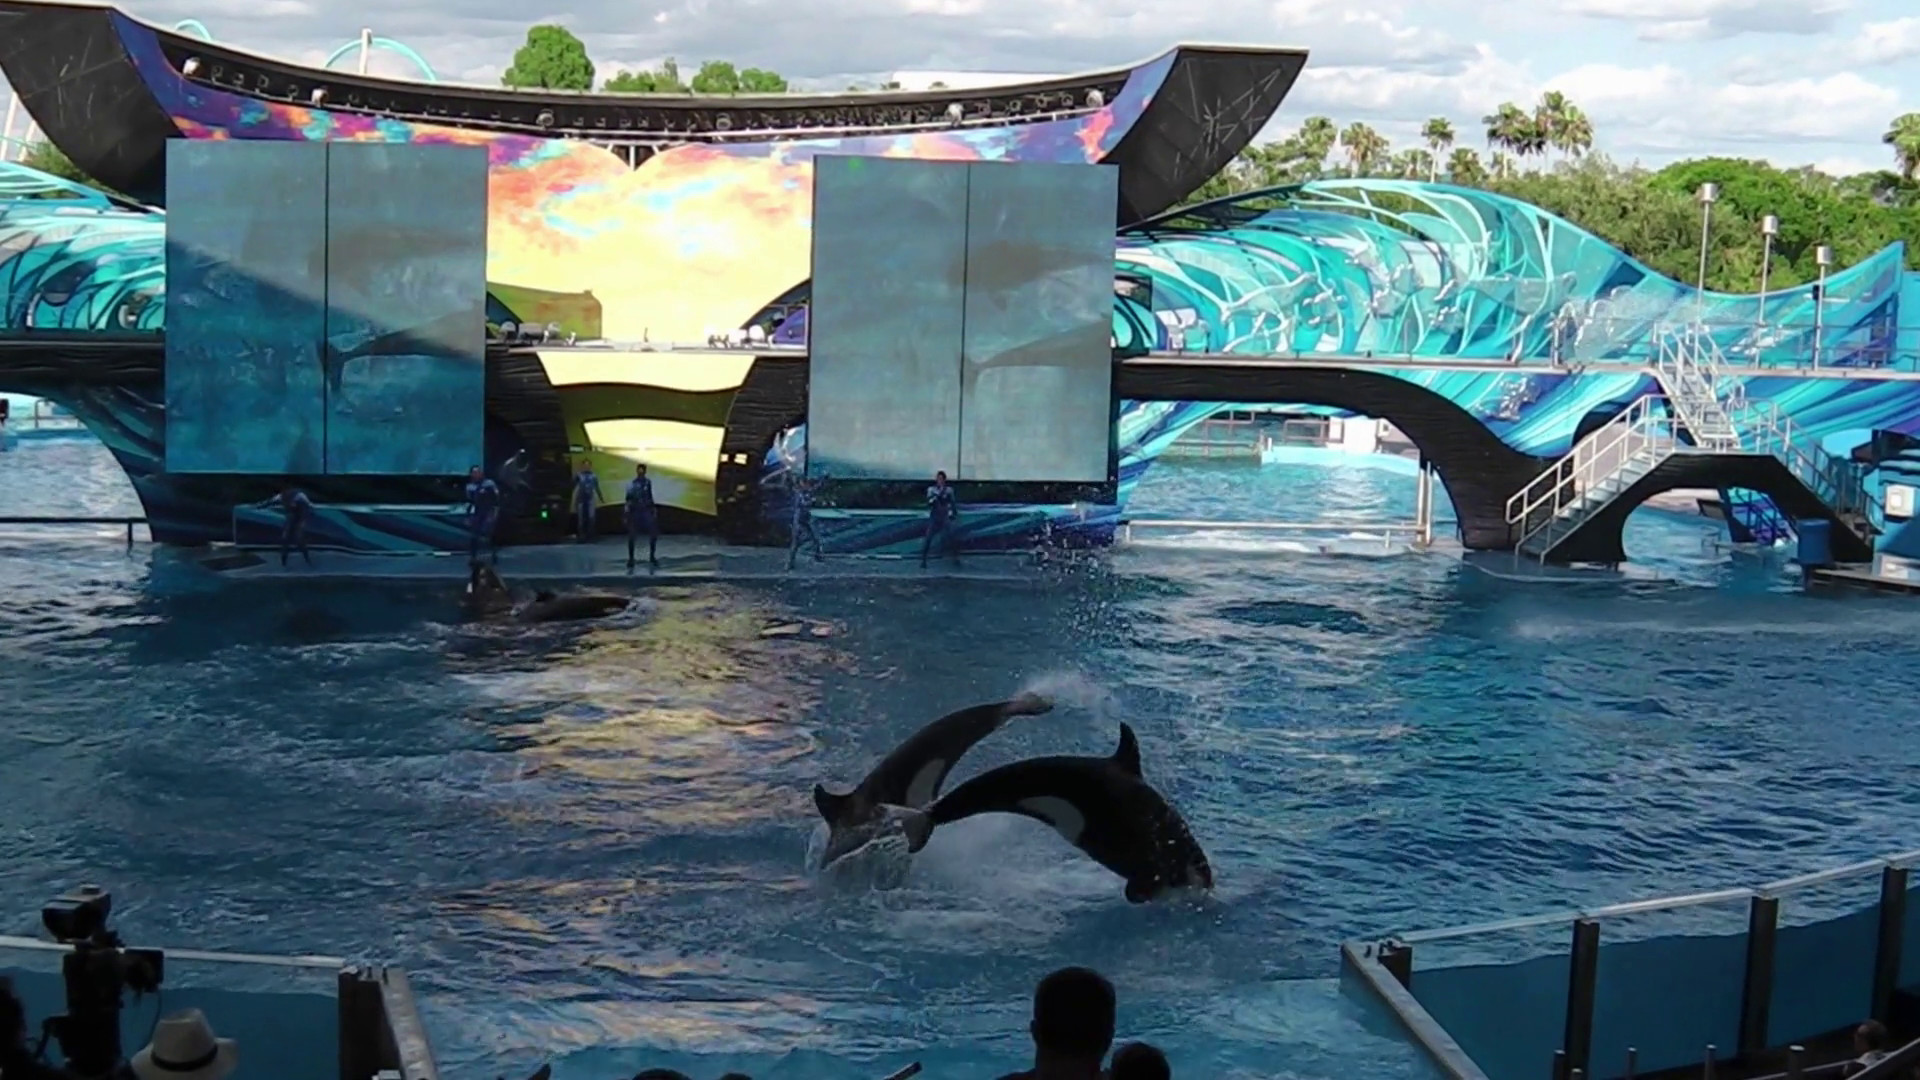 Res: 1920x1080, Orlando, Florida, United States - April 22, 2012: Tilikum, the killer  whale, jumping in the shamu show at Seaworld. Tilikum is the largest and  most famous ...